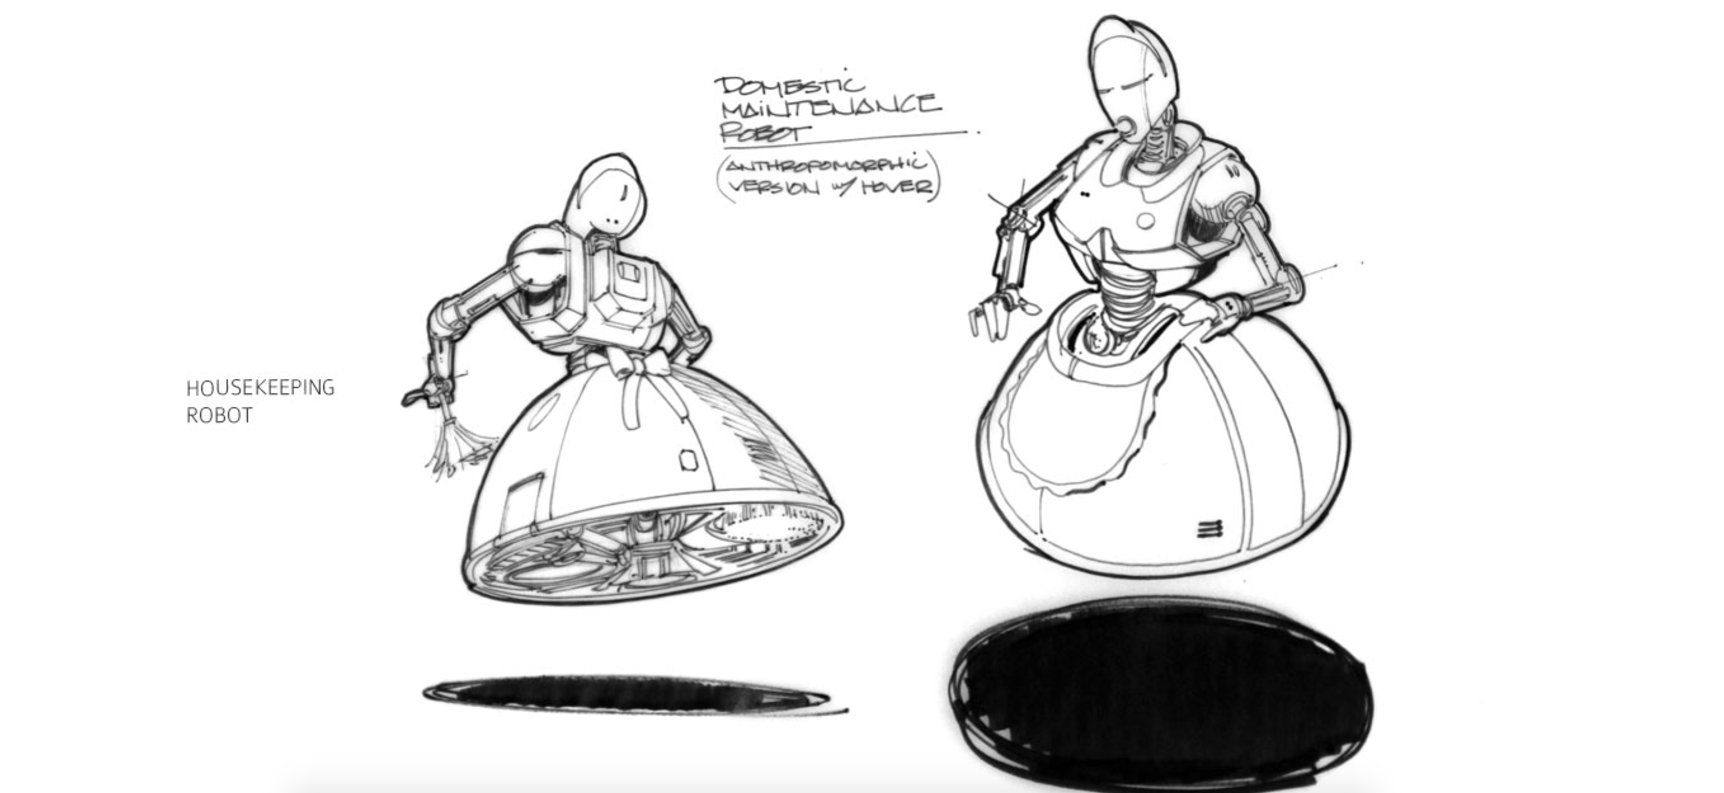 Edward Eyth Design sketching Back to the future II Housekeeping robot